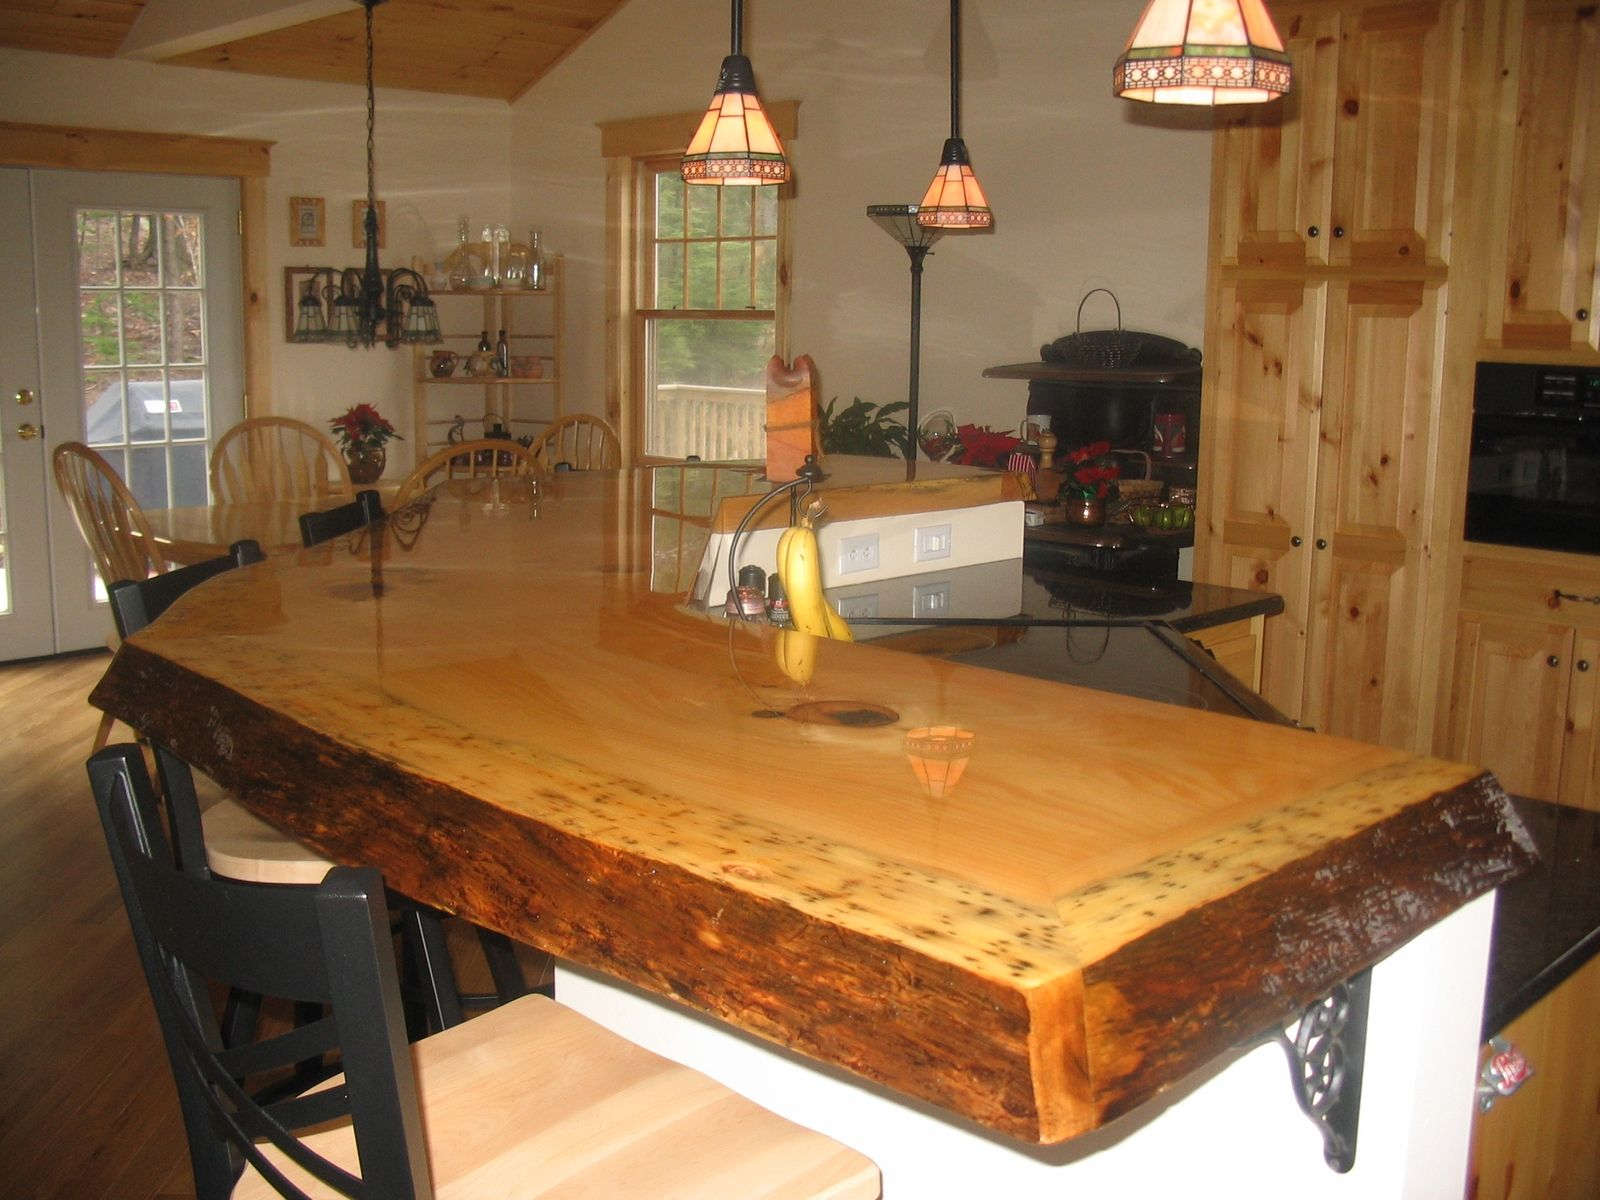 Western Countertops Custom Made Rustic Bar Top By Timeless Woodworking